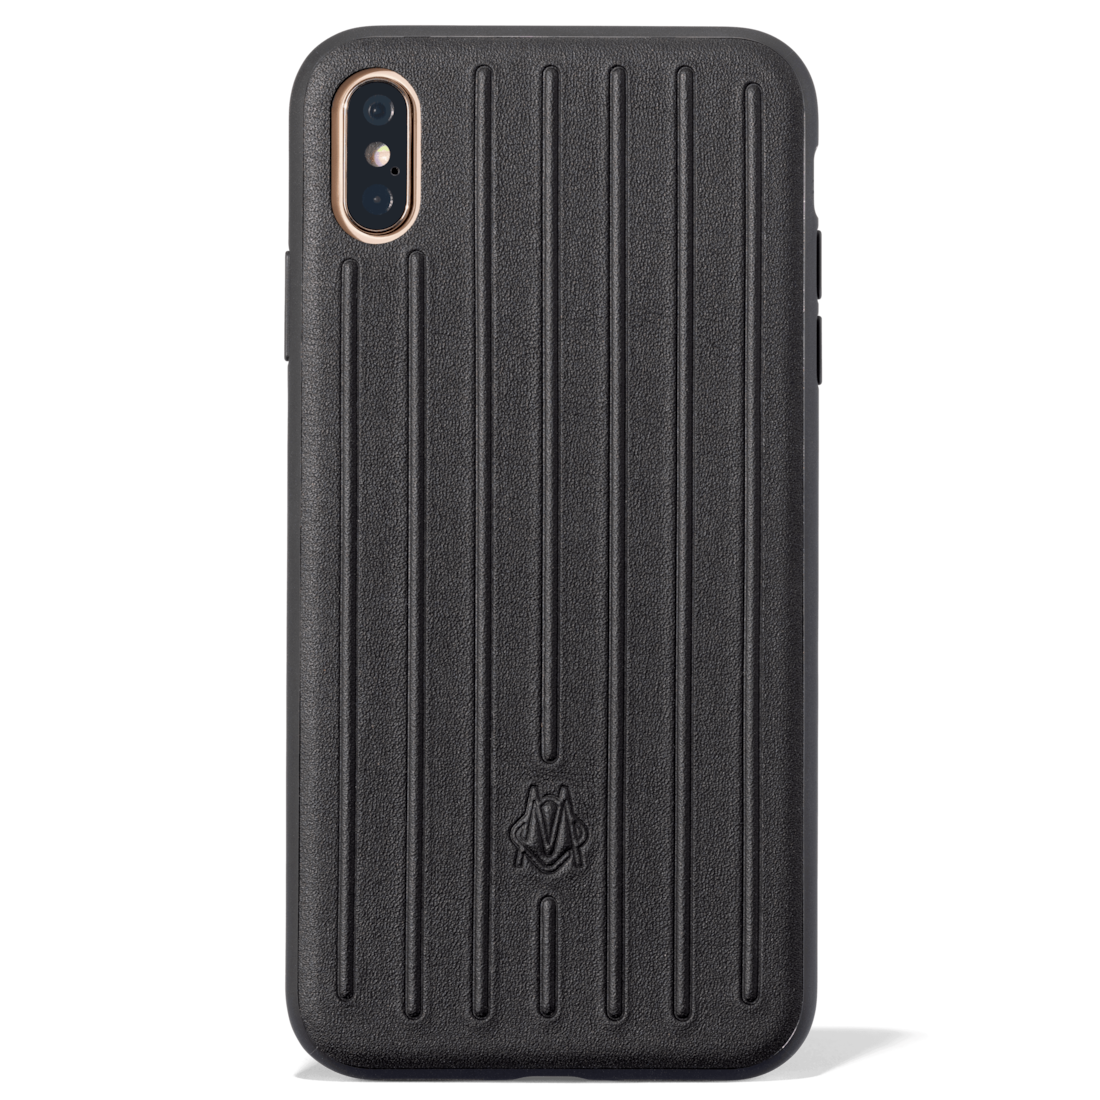 a58651ad2a22 RIMOWA accessories Leather Black Case for iPhone XS Max